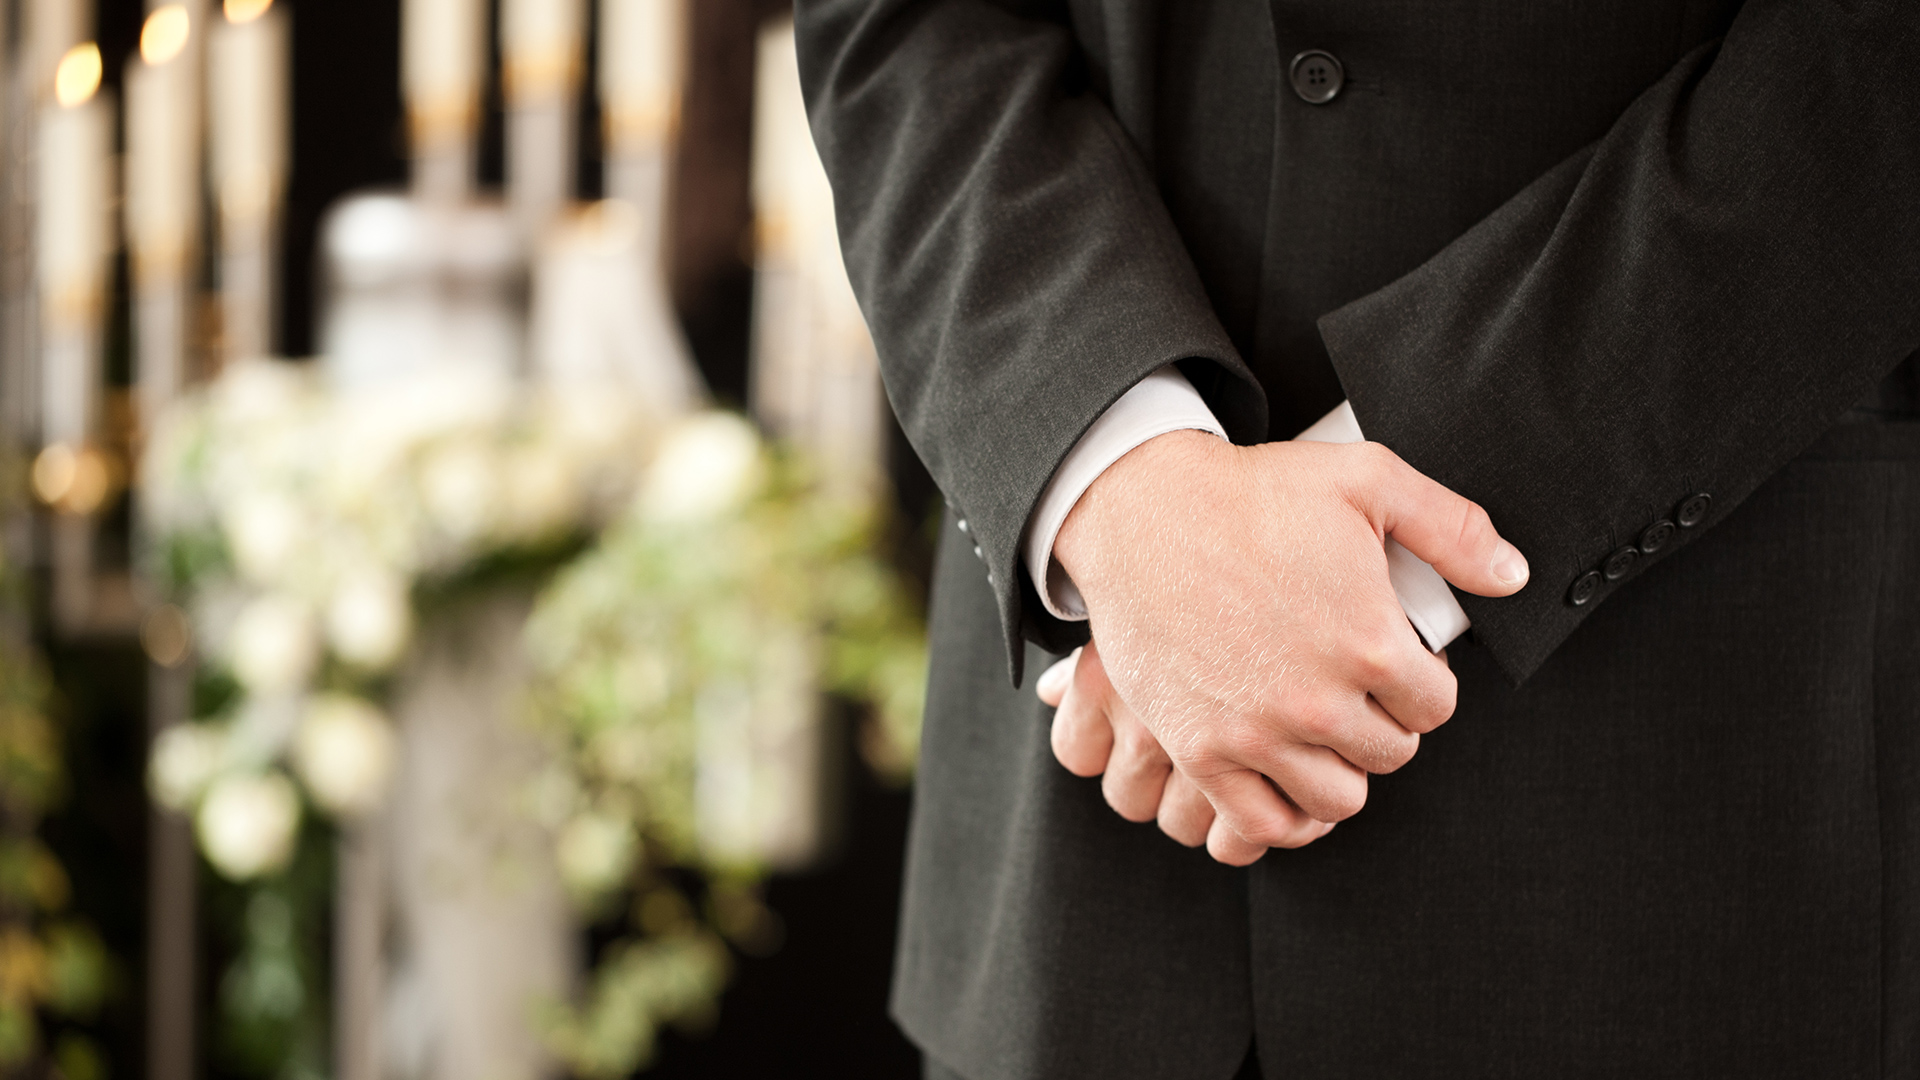 Funeral etiquette: 15 tips for attending a funeral